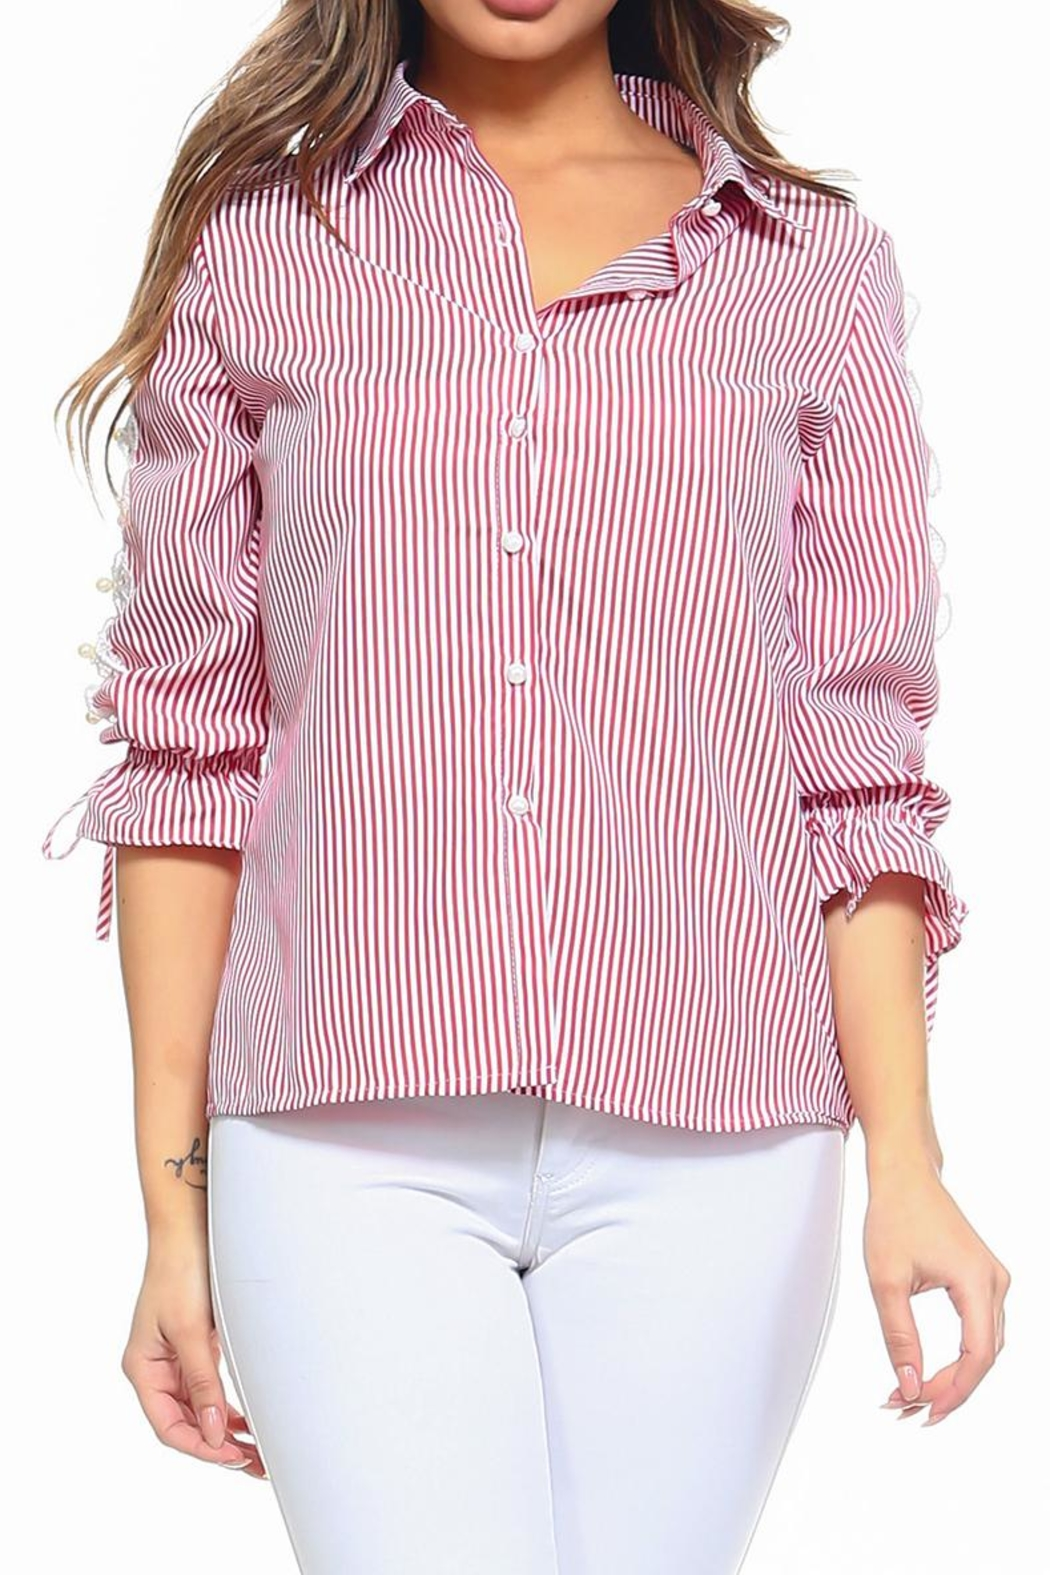 Passport Stripe Shirt - Main Image